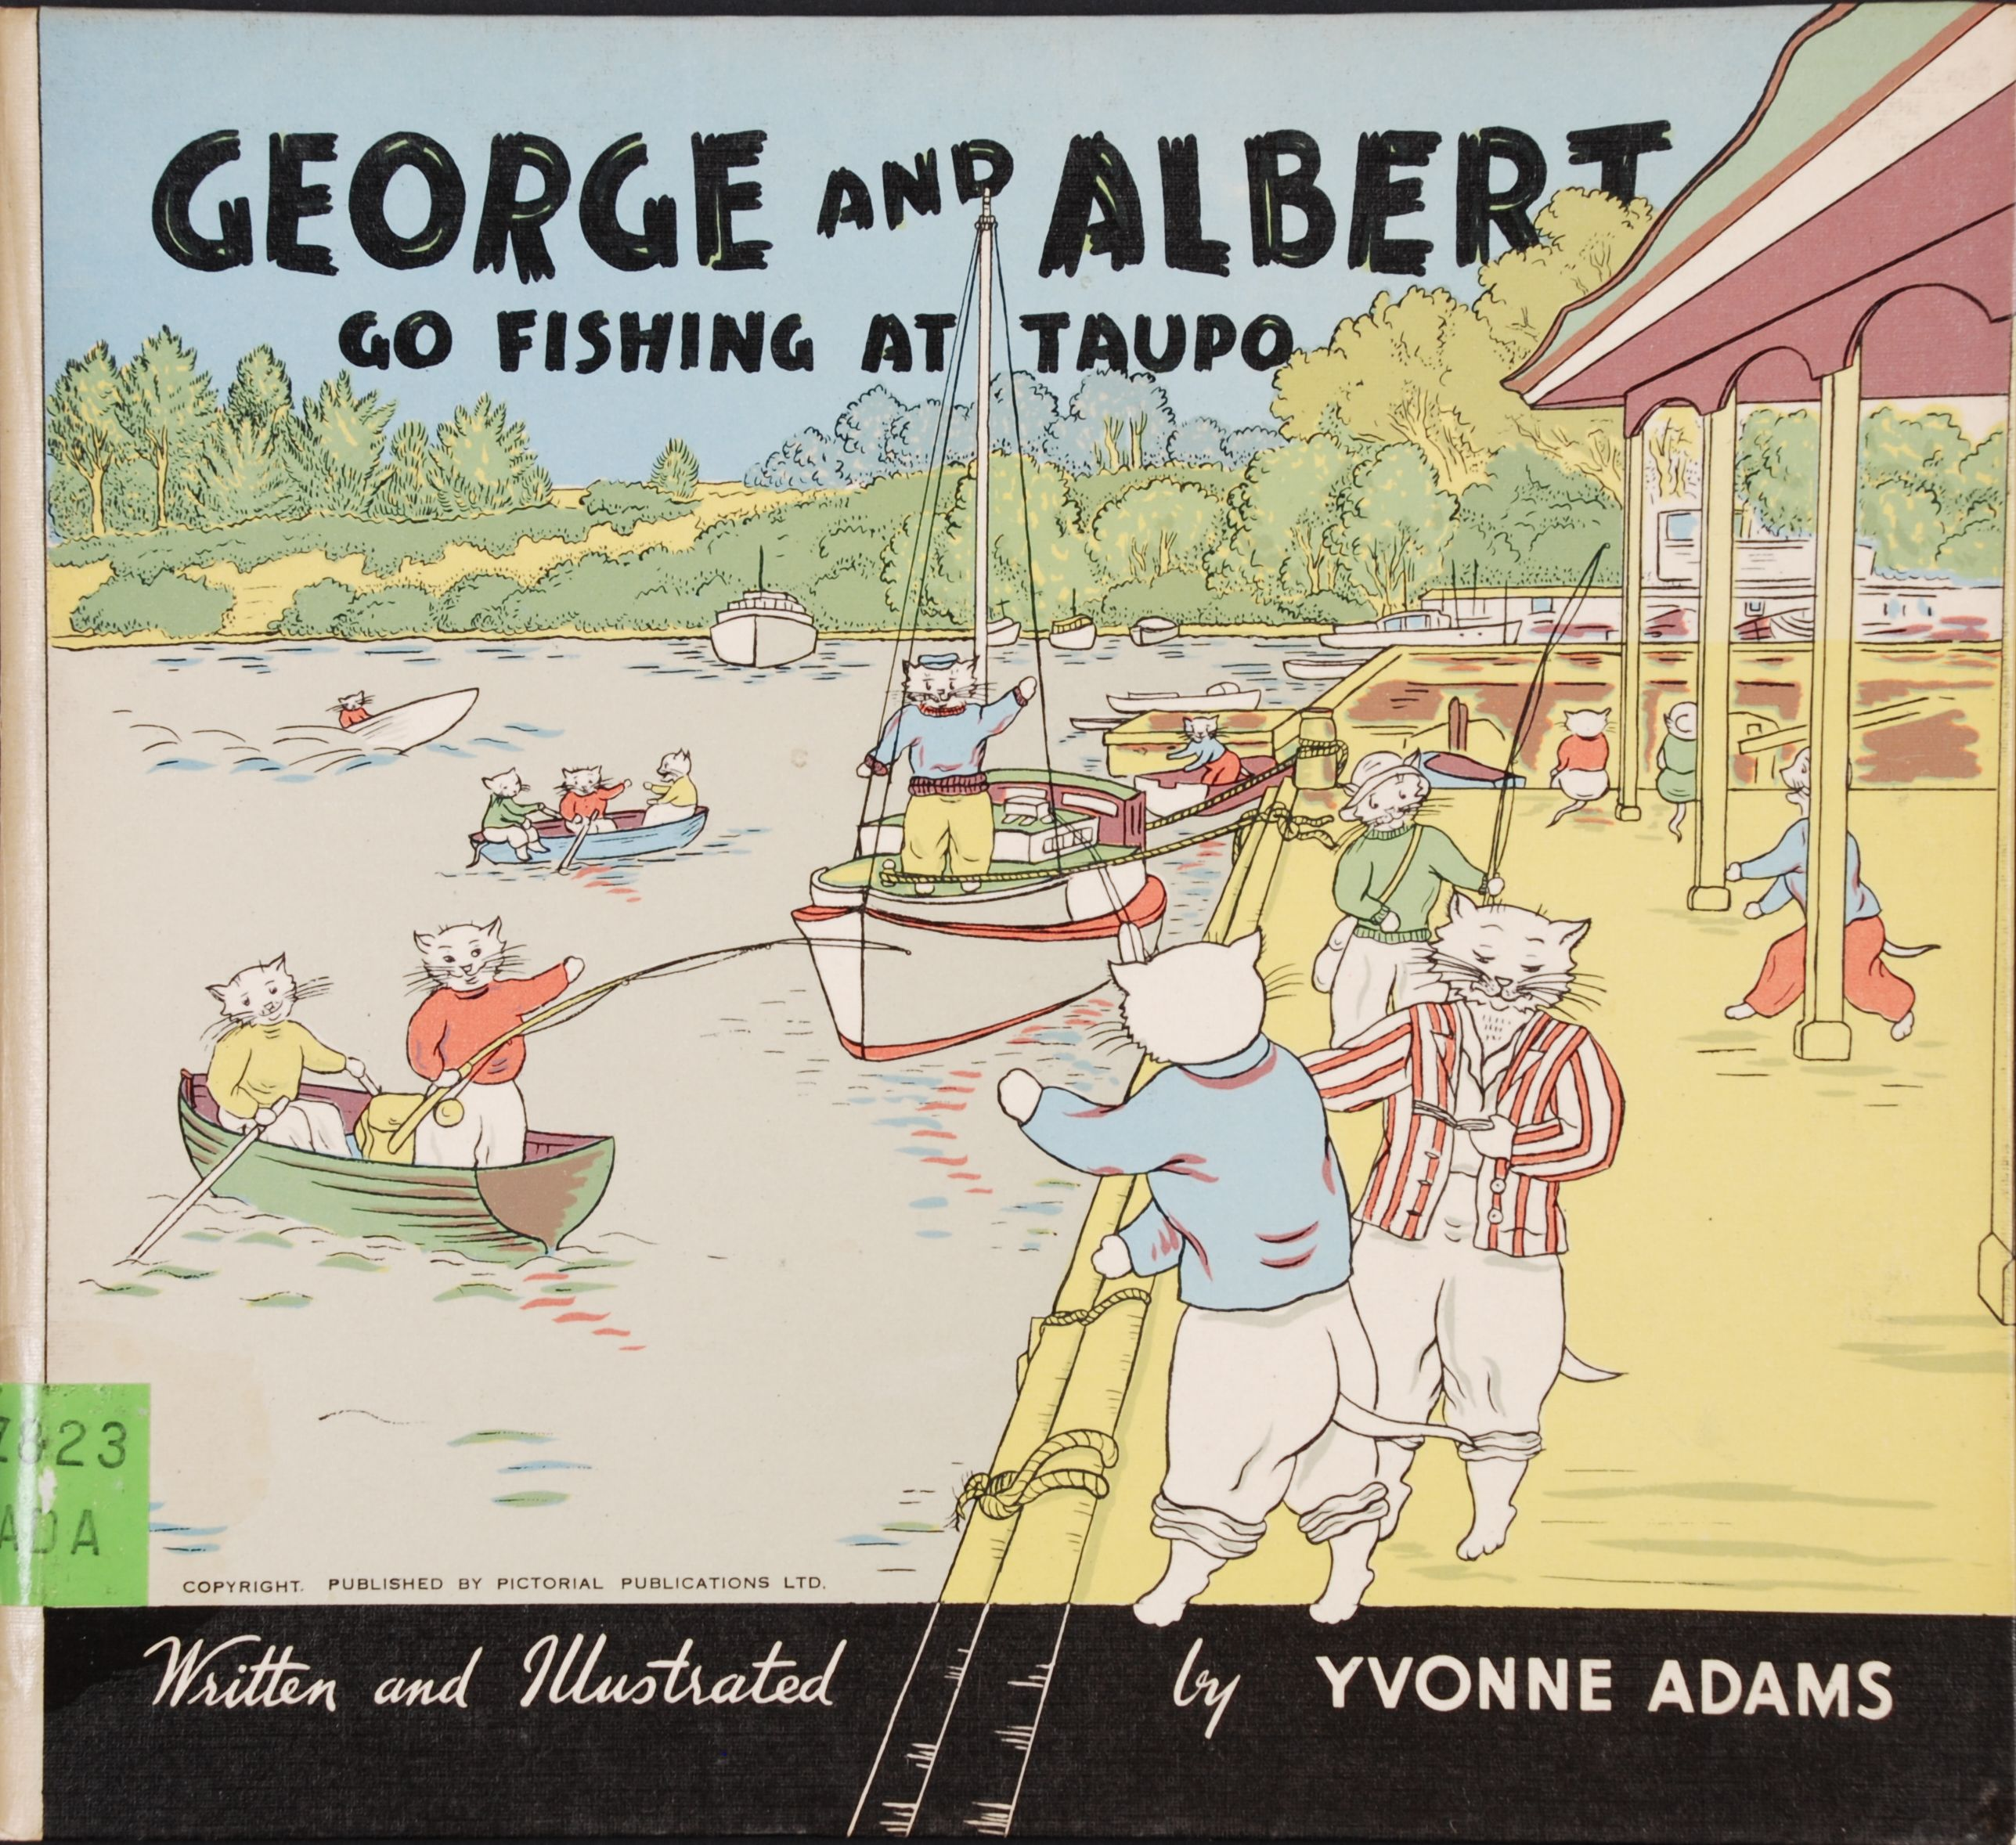 Yvonne Adams. George and Albert Snowywhiskers go fishing at Taupo. Hastings, N.Z.: Pictorial Publications Ltd., [1952].